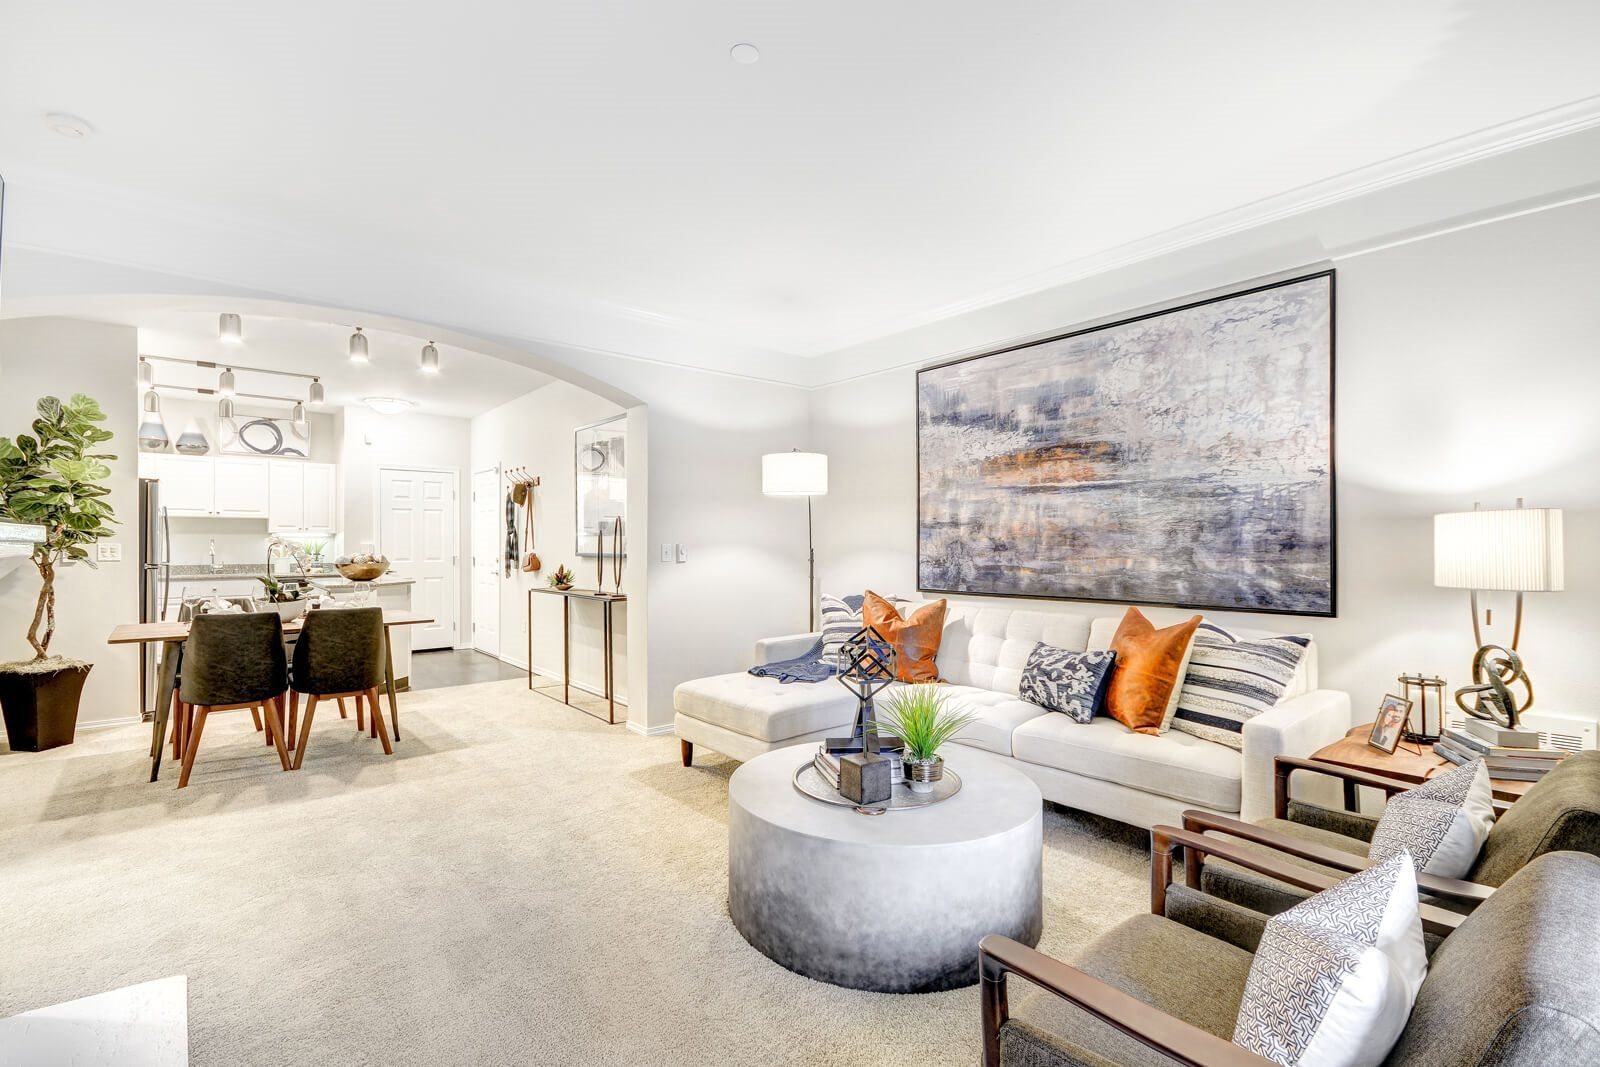 Bright and Airy Living Spaces at The Estates at Cougar Mountain, Issaquah, WA